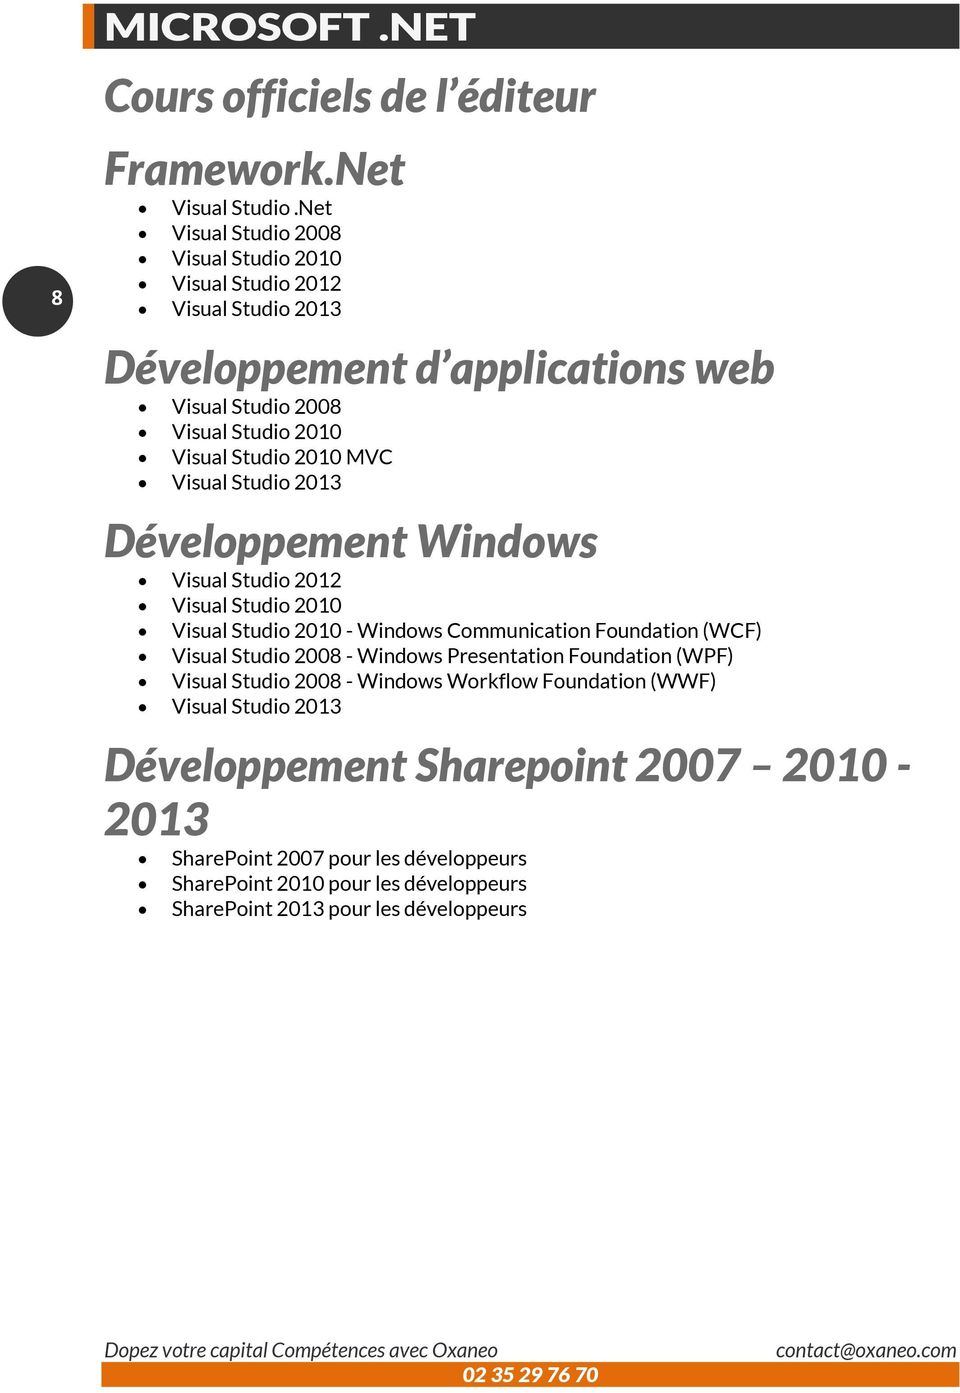 2010 MVC Visual Studio 2013 Développement Windows Visual Studio 2012 Visual Studio 2010 Visual Studio 2010 - Windows Communication Foundation (WCF) Visual Studio